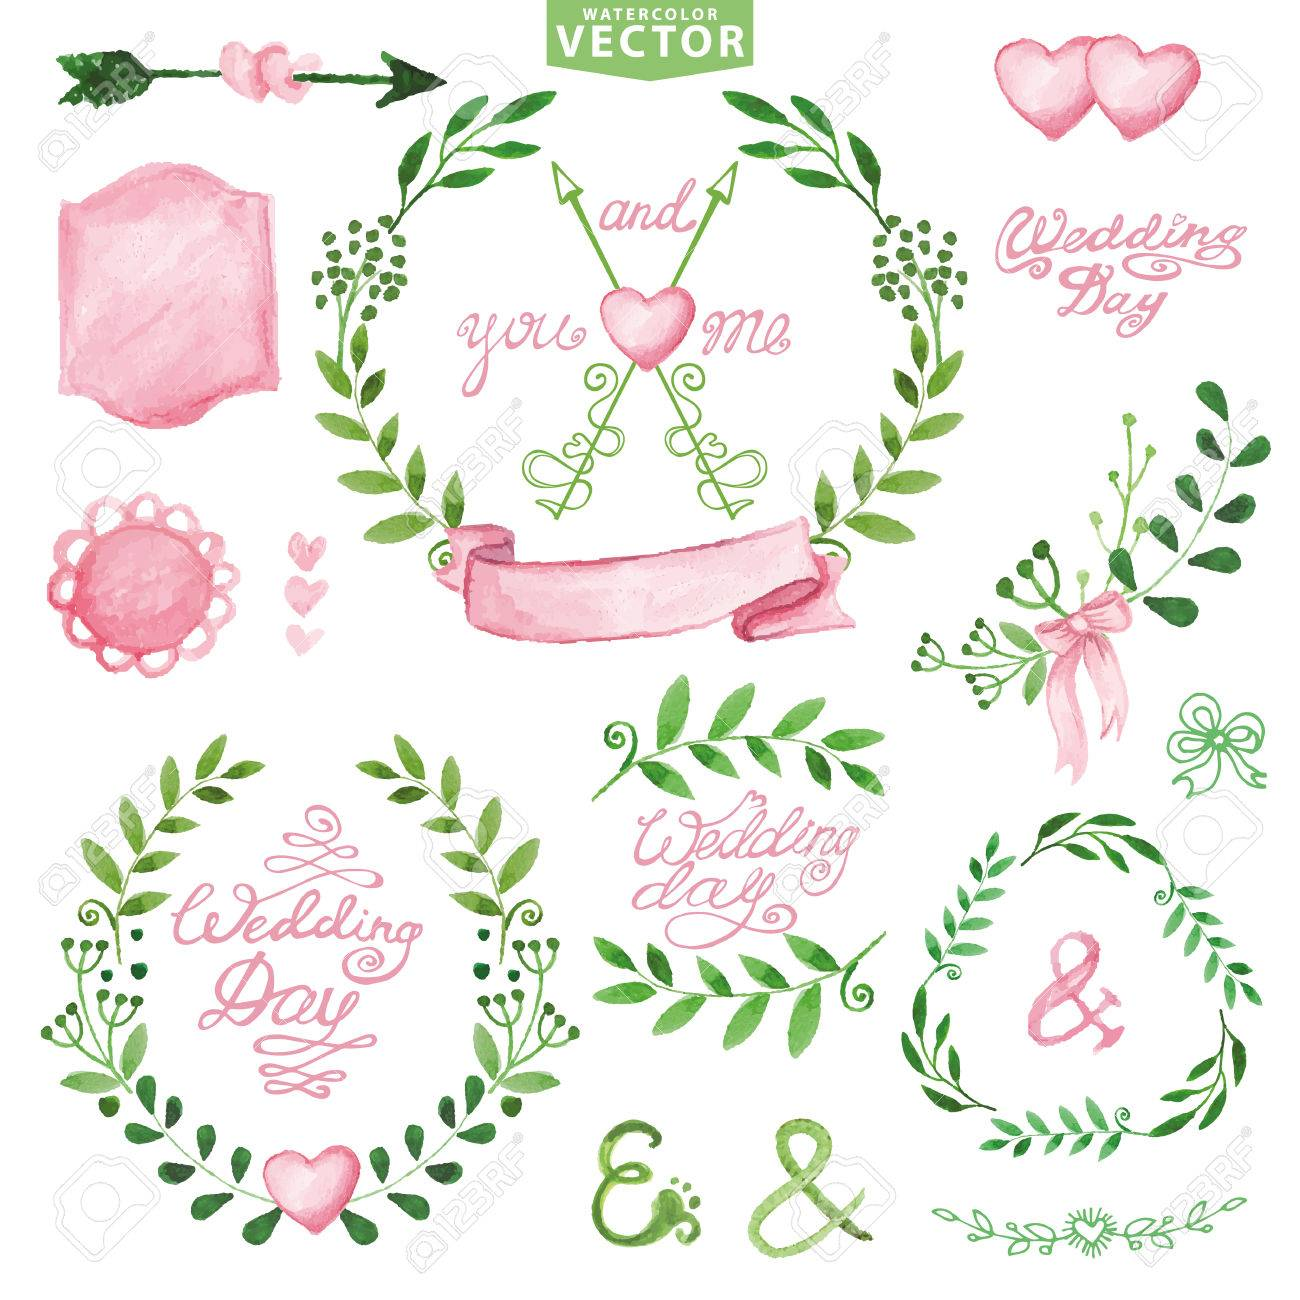 Watercolor wedding decoreen branches wreaths and laurels pink watercolor wedding decoreen branches wreaths and laurels pink decor ribbonsbadges junglespirit Image collections